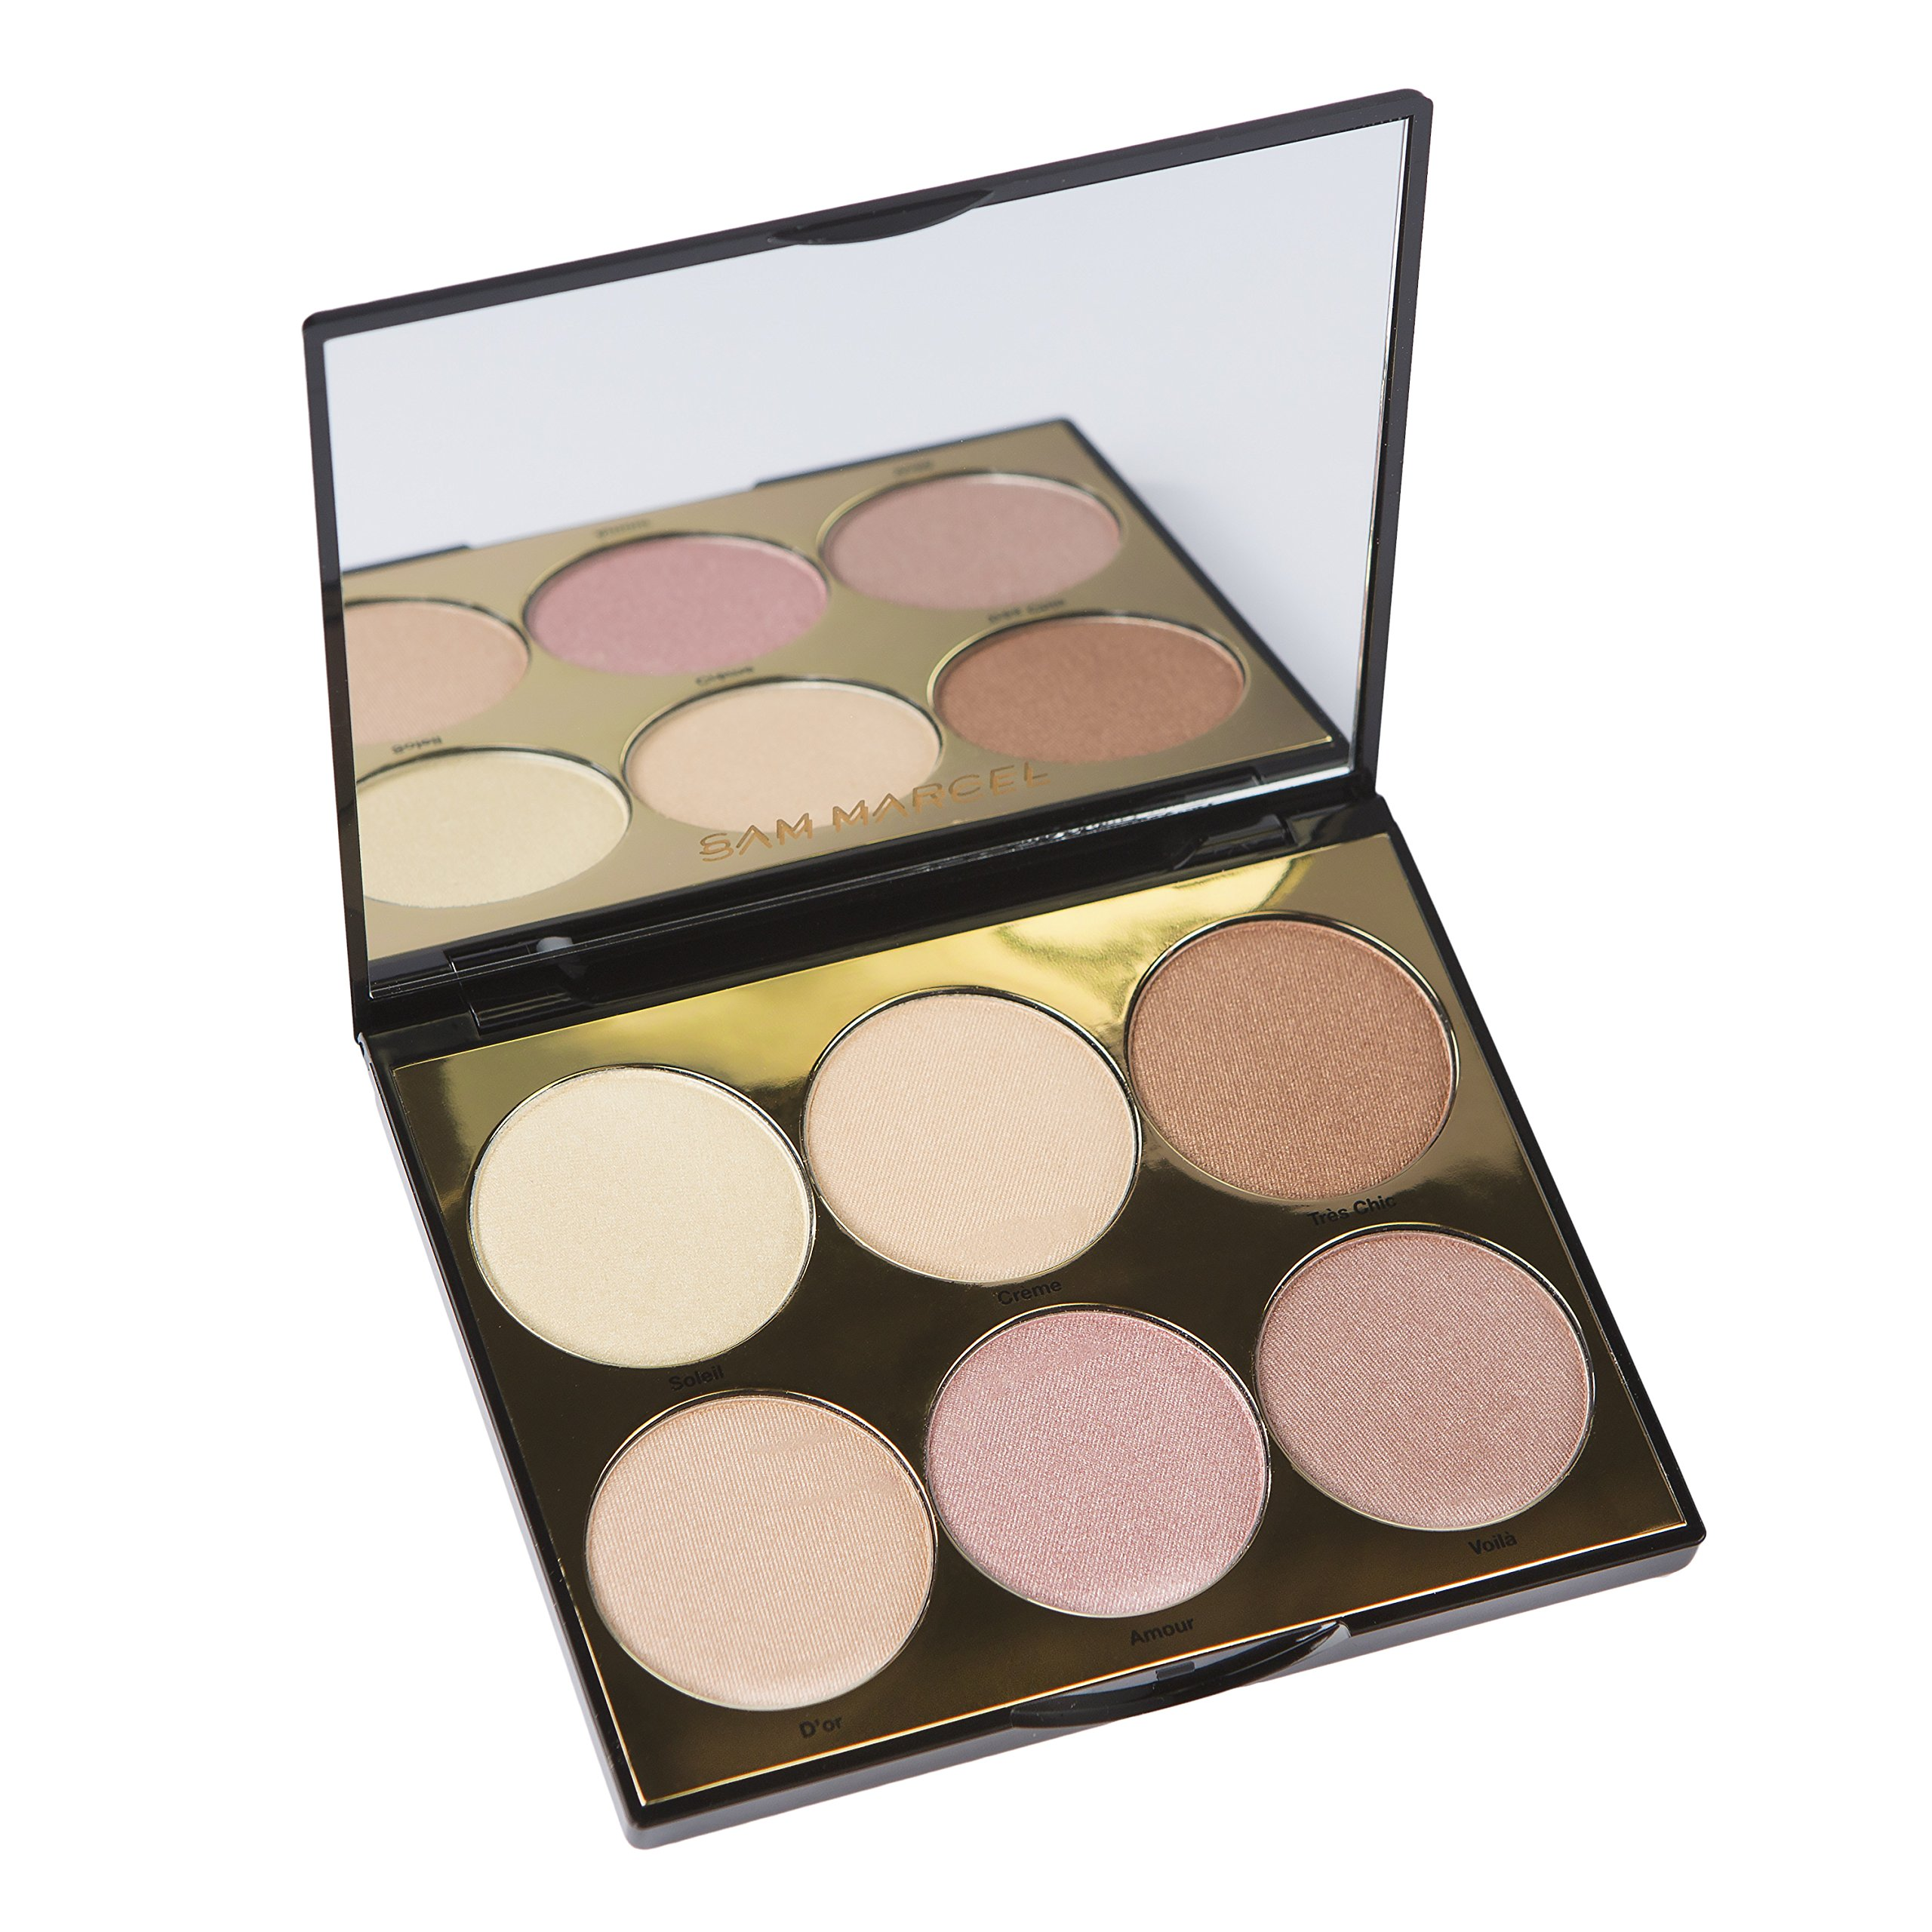 THAT GLOW GLOW HIGHLIGHT PALETTE